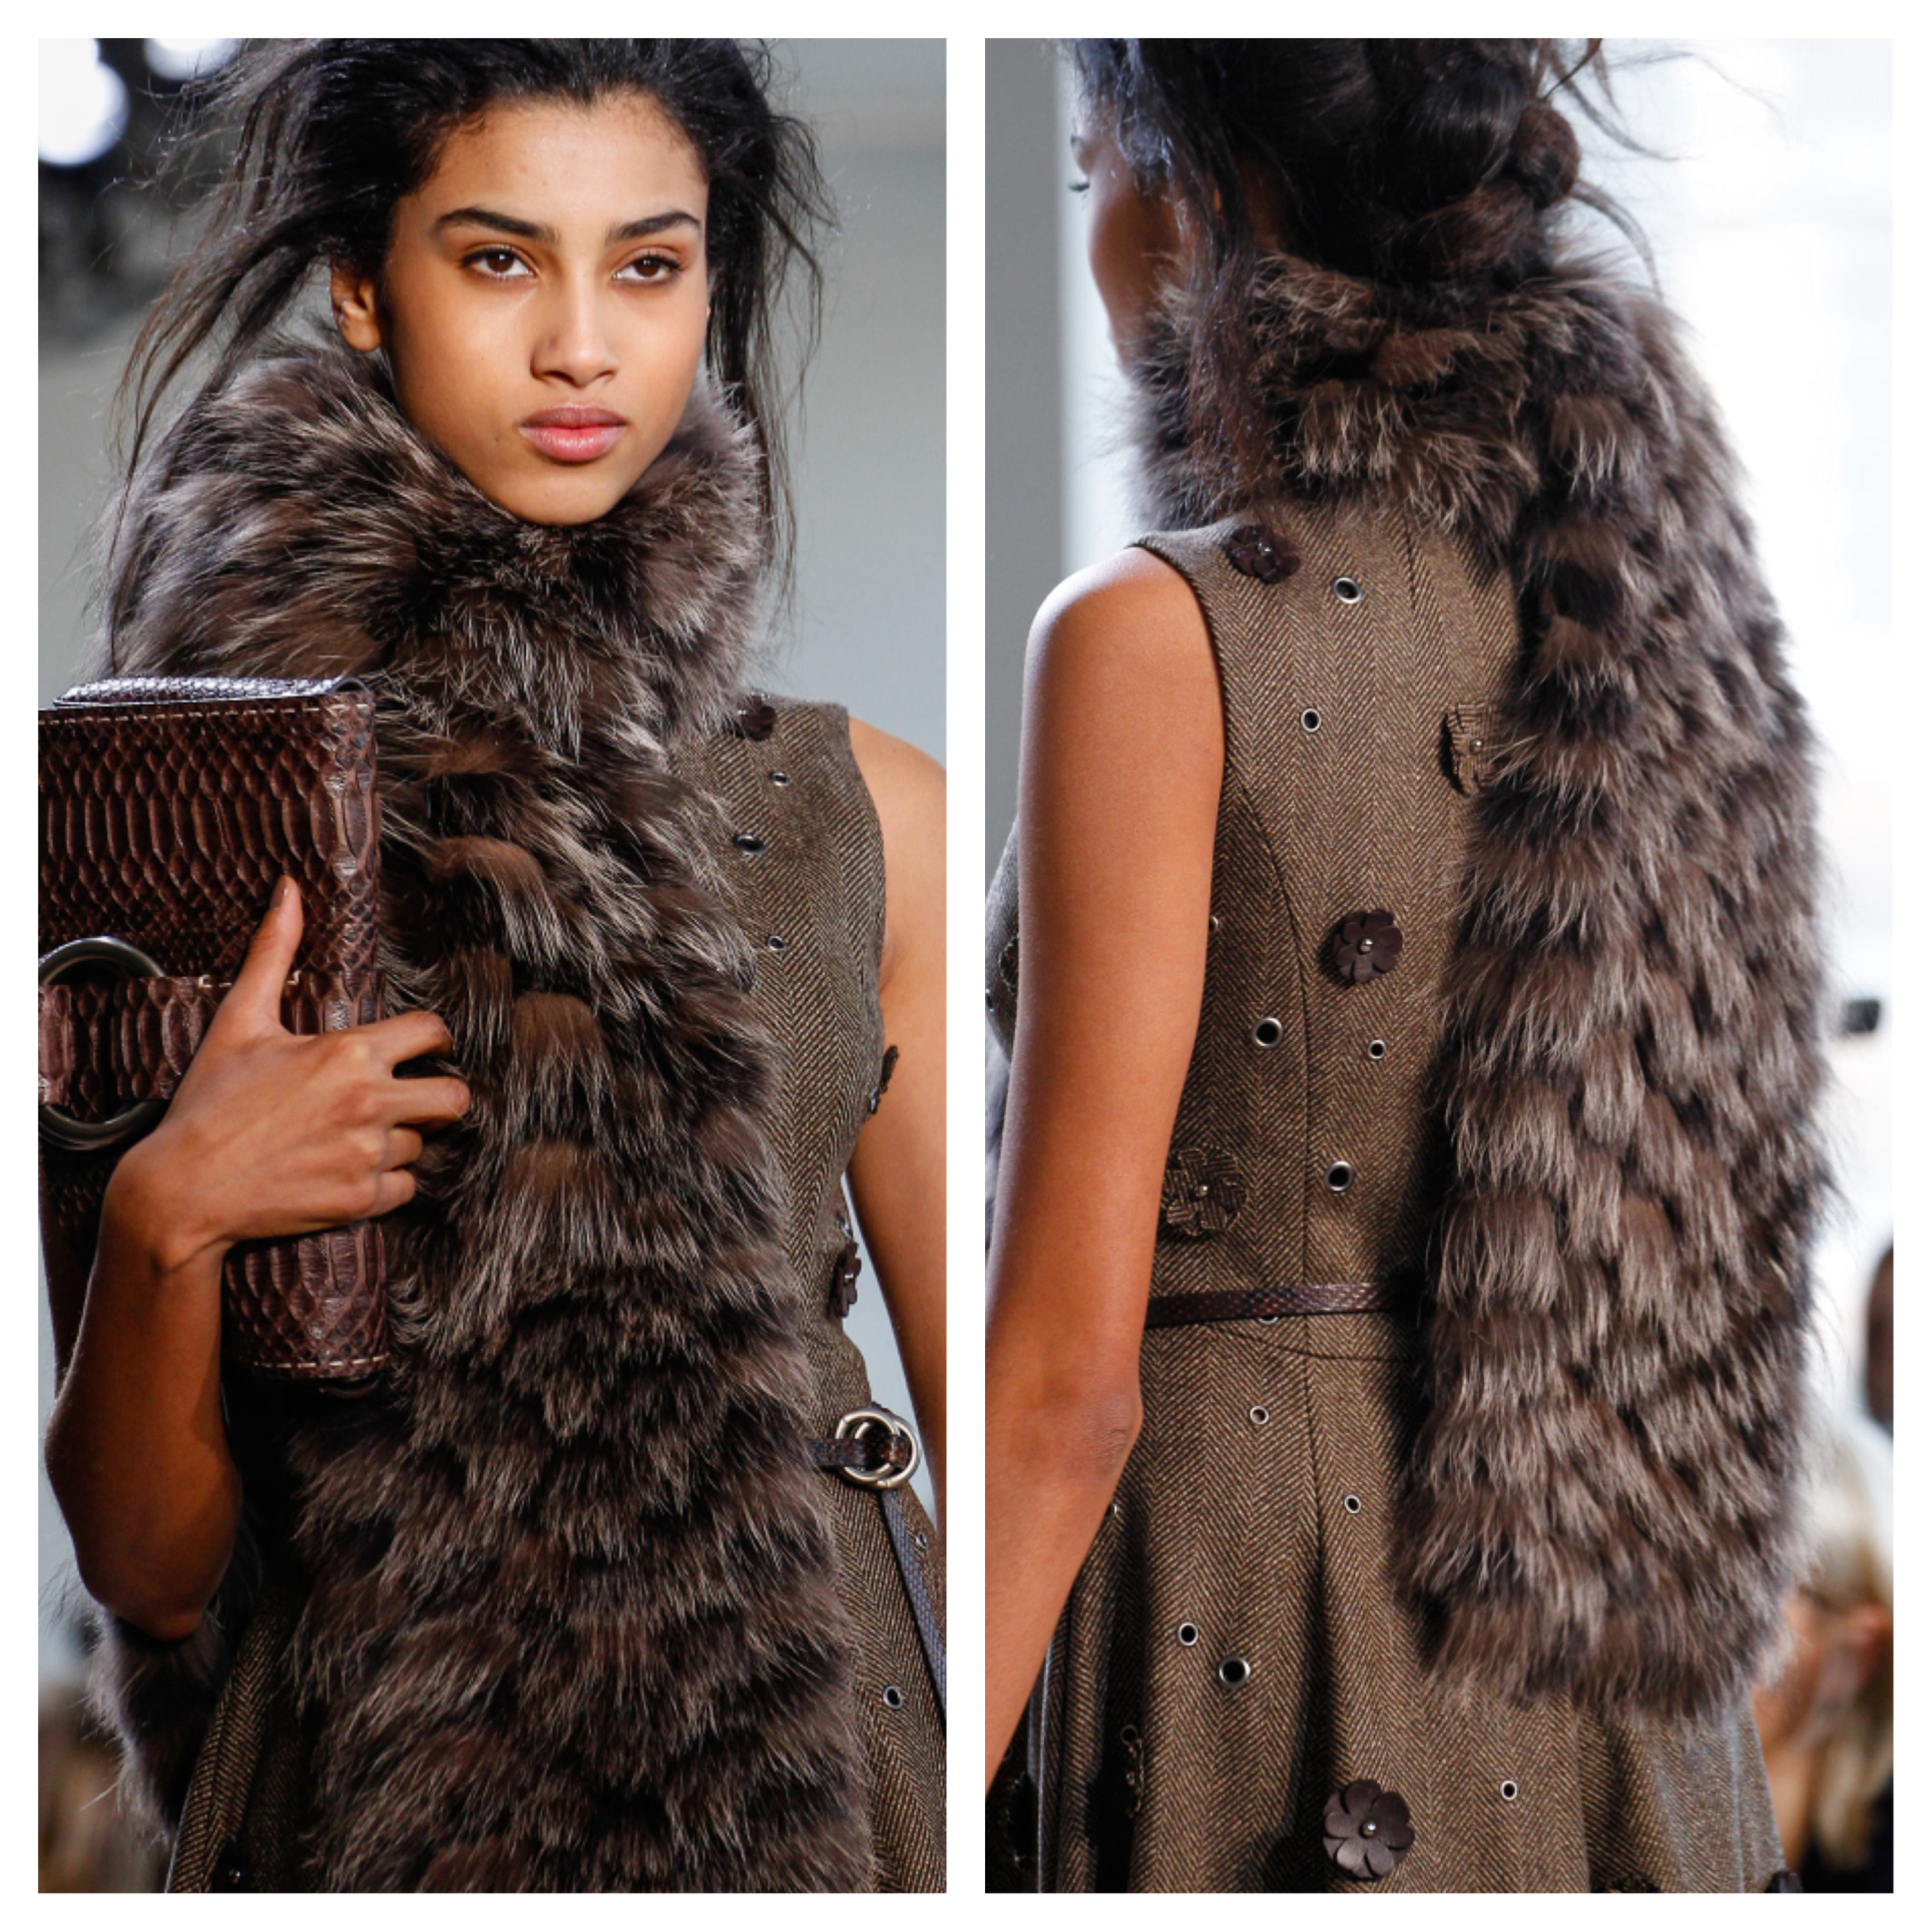 Michael Kors knitted fox scarf Fall 2014-Winter 2015